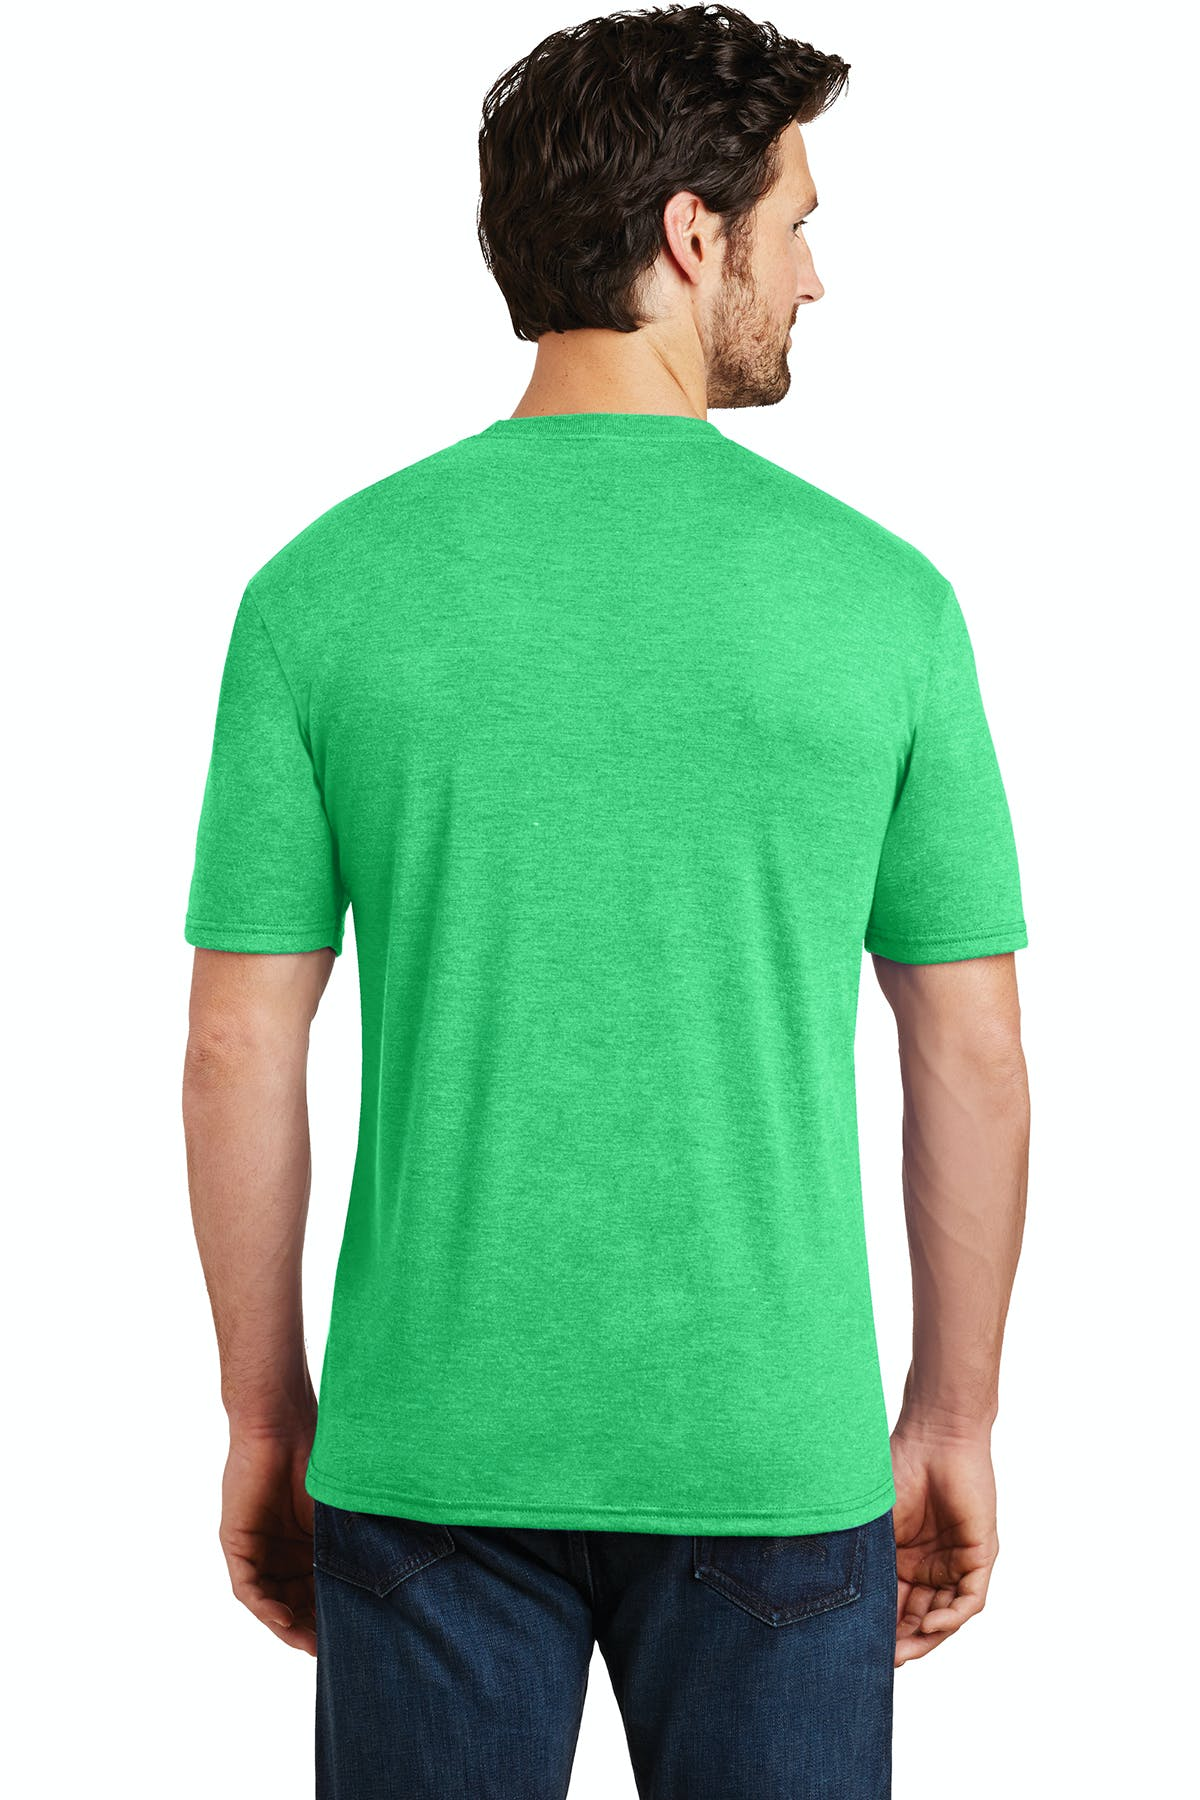 District Made® Mens Perfect Tri® Crew Tee - sold by PRINT CITY GRAPHICS, INC